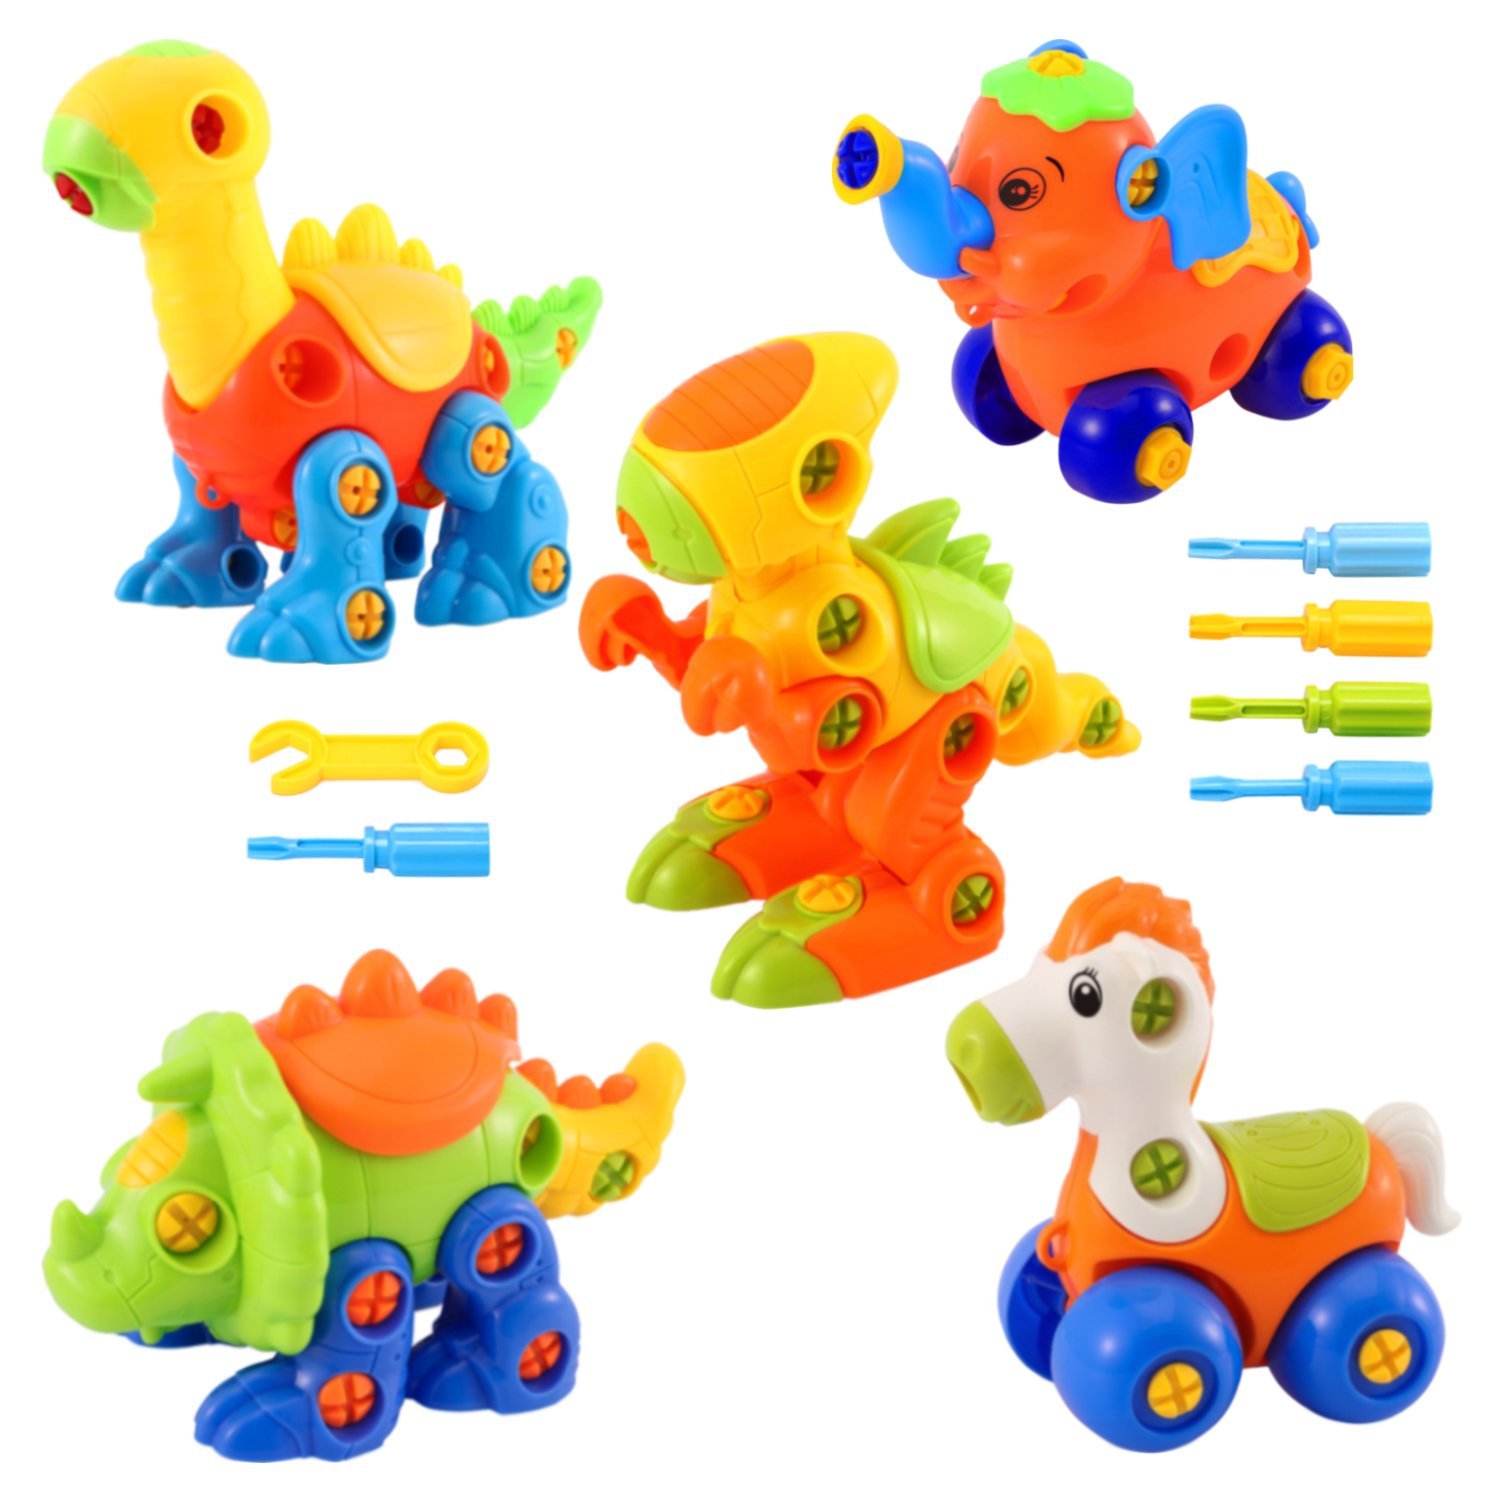 Glonova Dinosaur Toys Take Apart Toys With Tools (Pack of 5, 144 Pcs) - Construction Engineering STEM Learning Toy Building Play Set - Best Toy for Boys & Girls Age 3+ Review